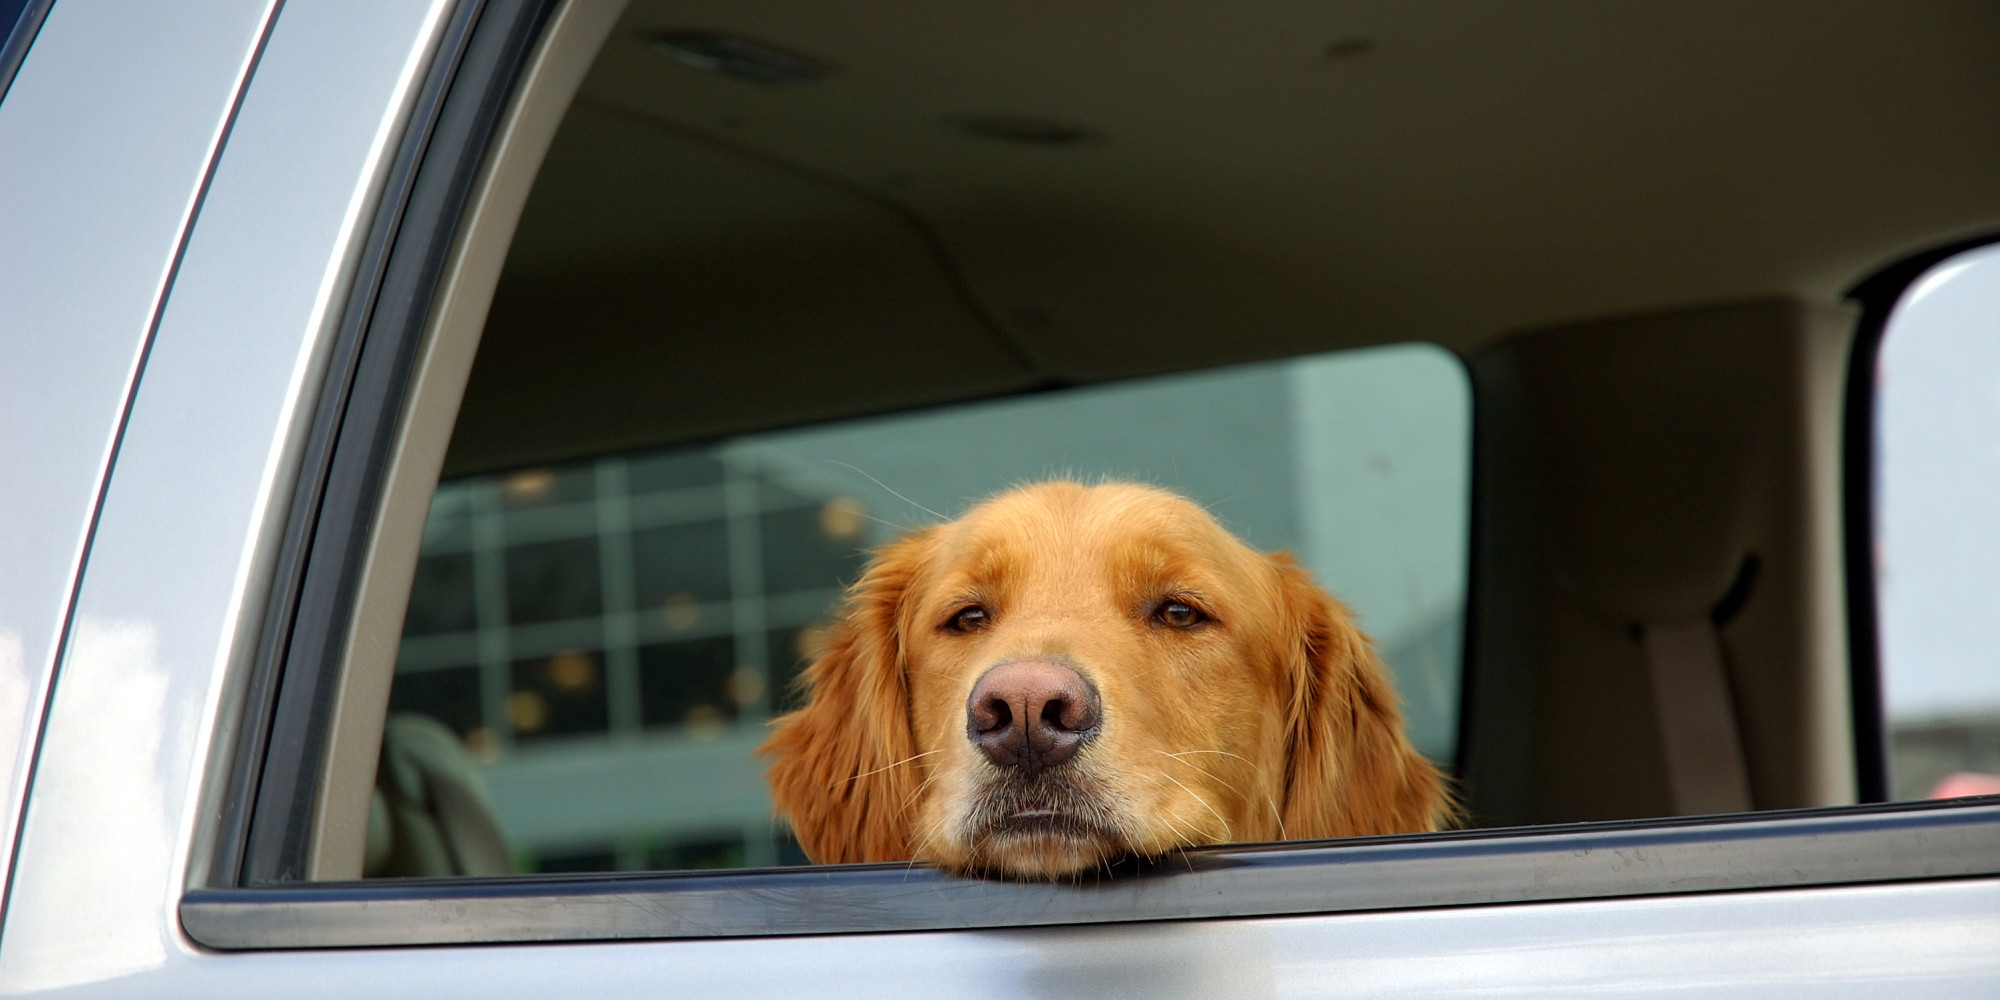 Laws On Dogs In Hot Cars